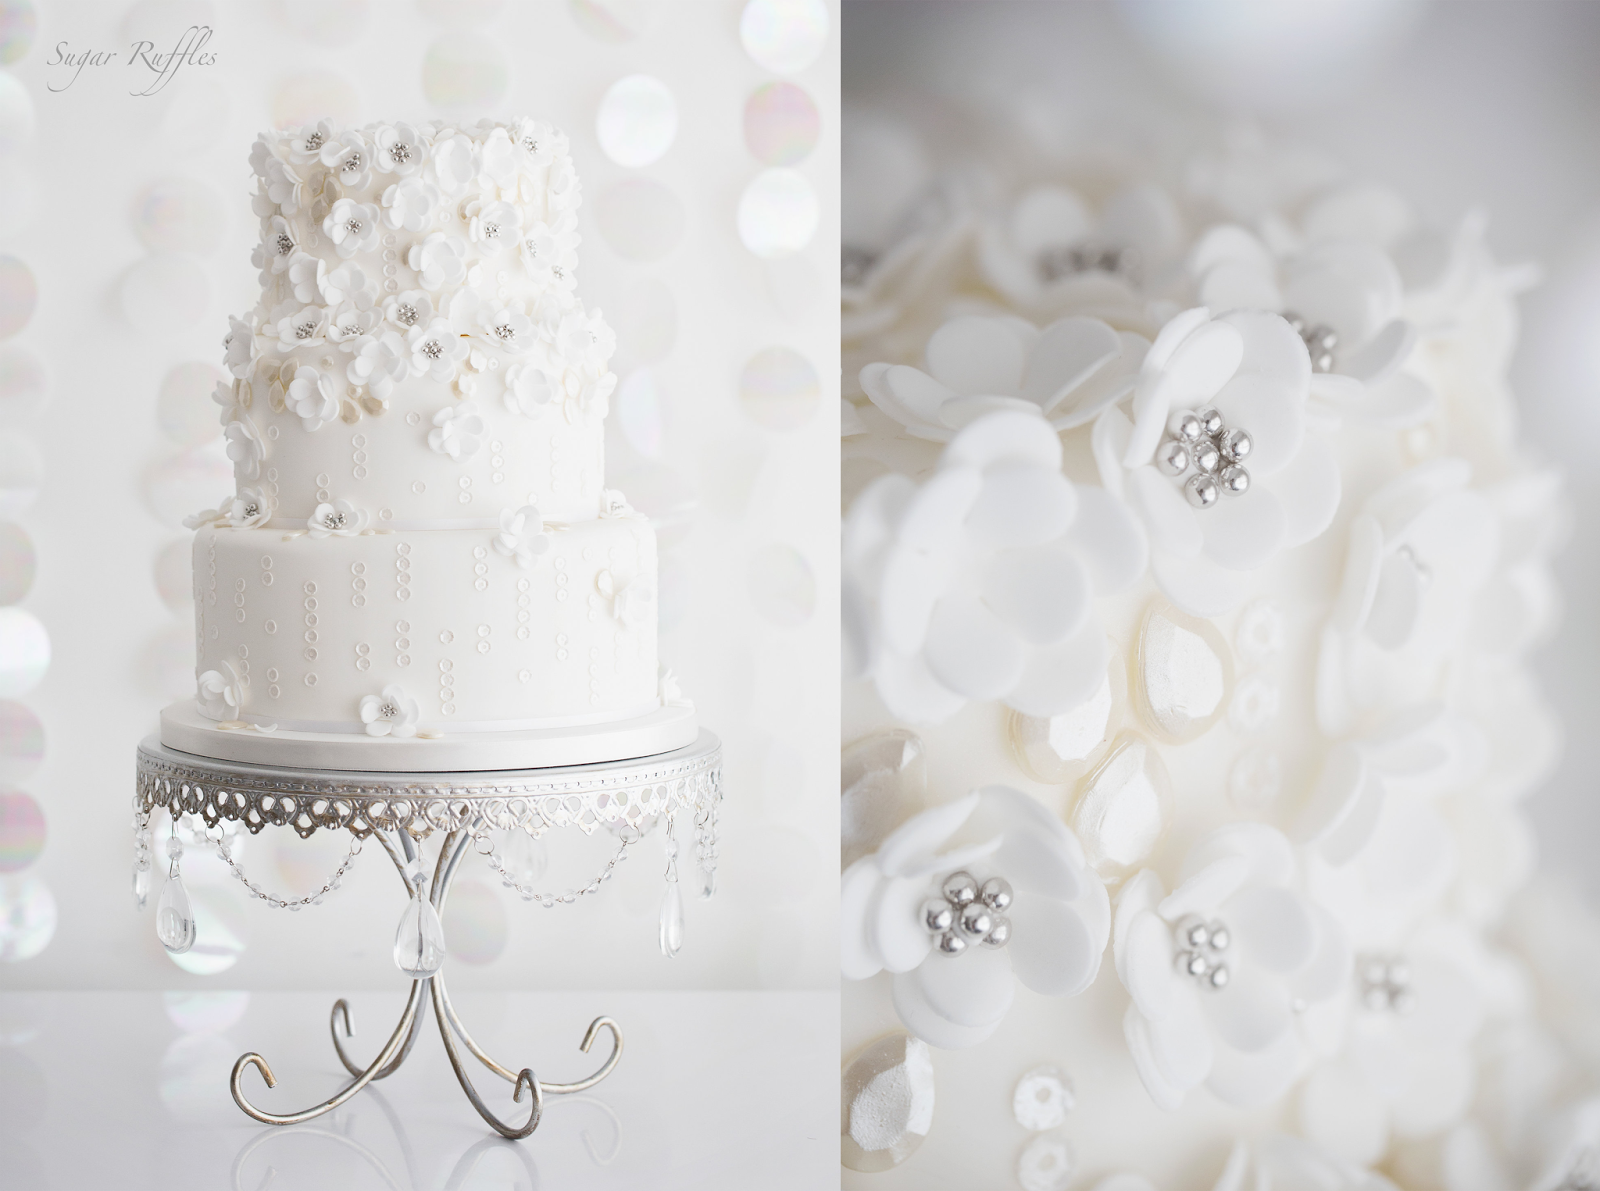 Chandelier Loopy Cake Plates (set of 3) | Cake, Wedding and Centerpieces